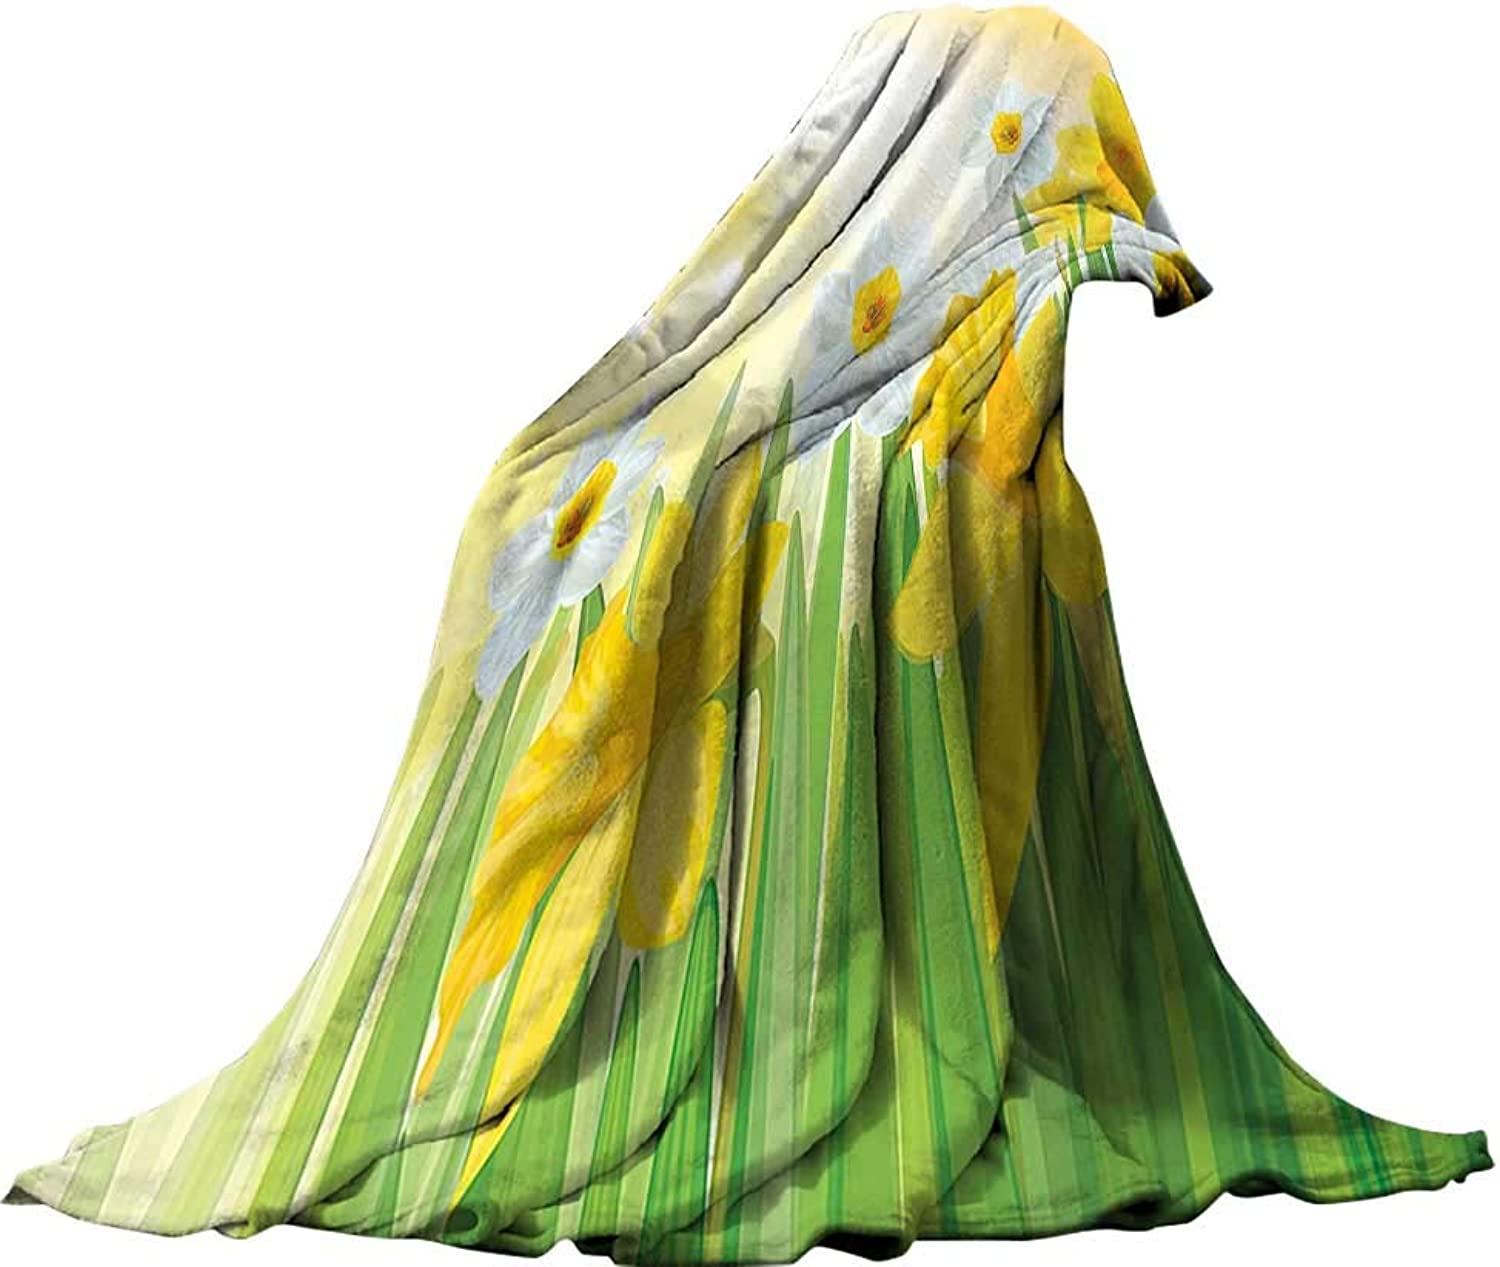 QINYANHome Weave Pattern Extra Long Blanket (90 x70 ) Lightweight Bed or Couch BlanketDaffodil Decor Daffodils in Garden Narcissus Rebirth Beginnings Celebration Graphic Green Yellow White.